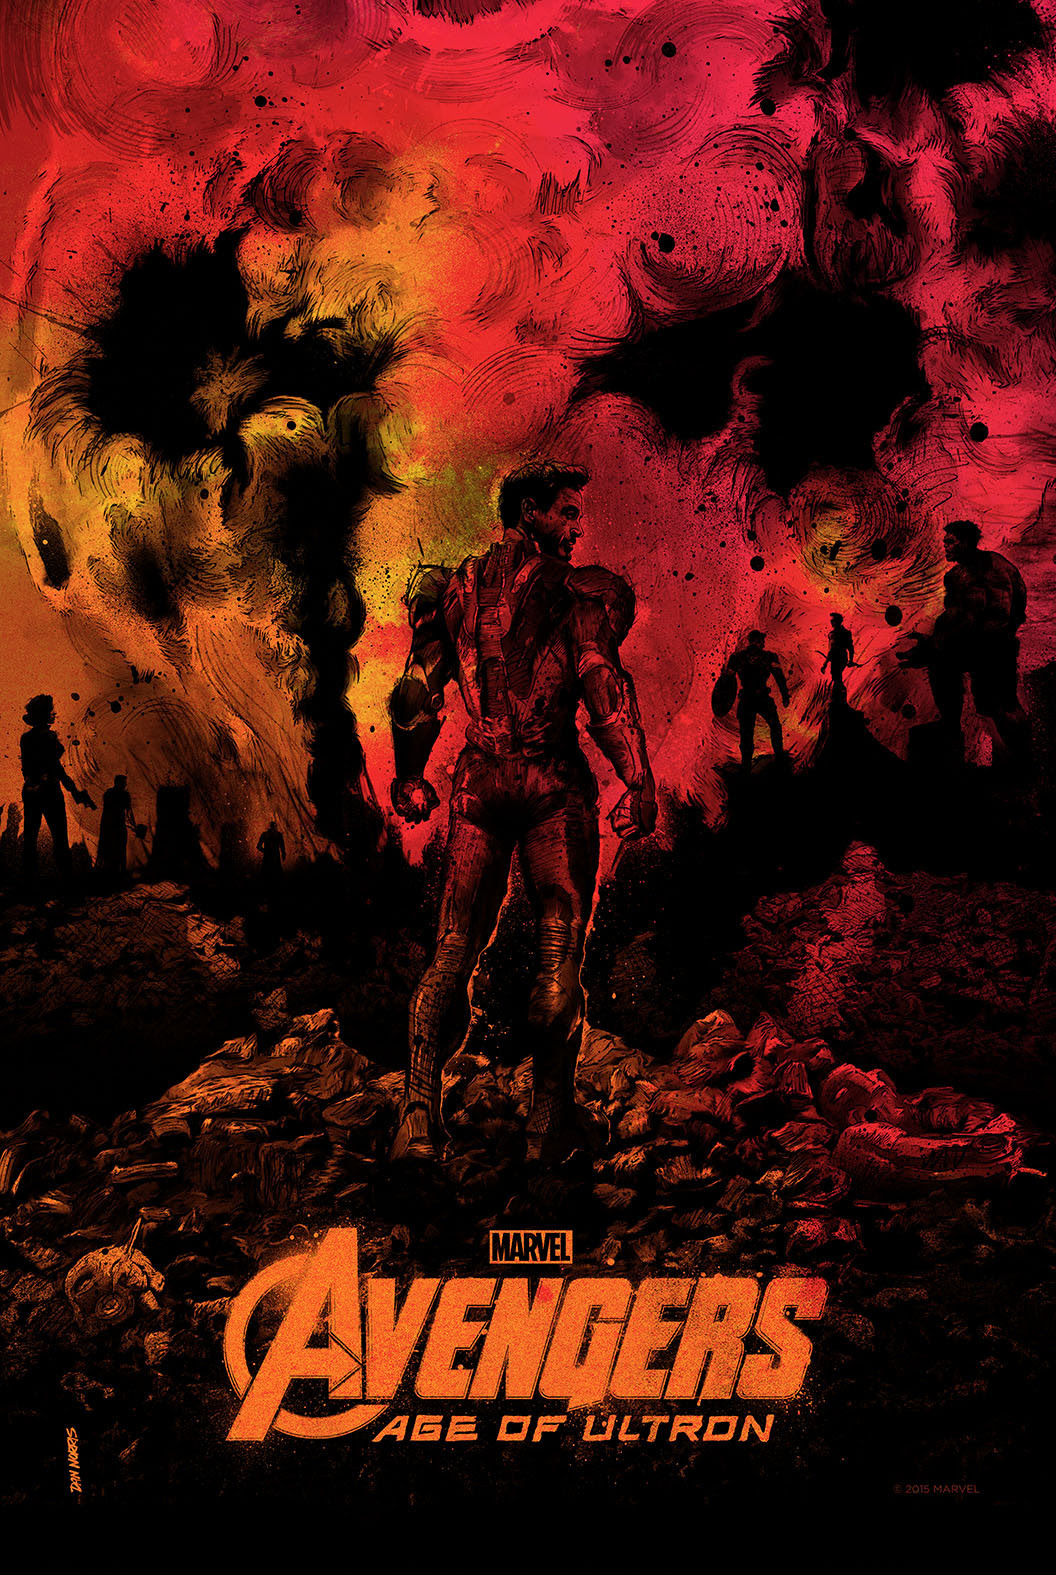 Avengers: Age of Ultron by Daniel Norris